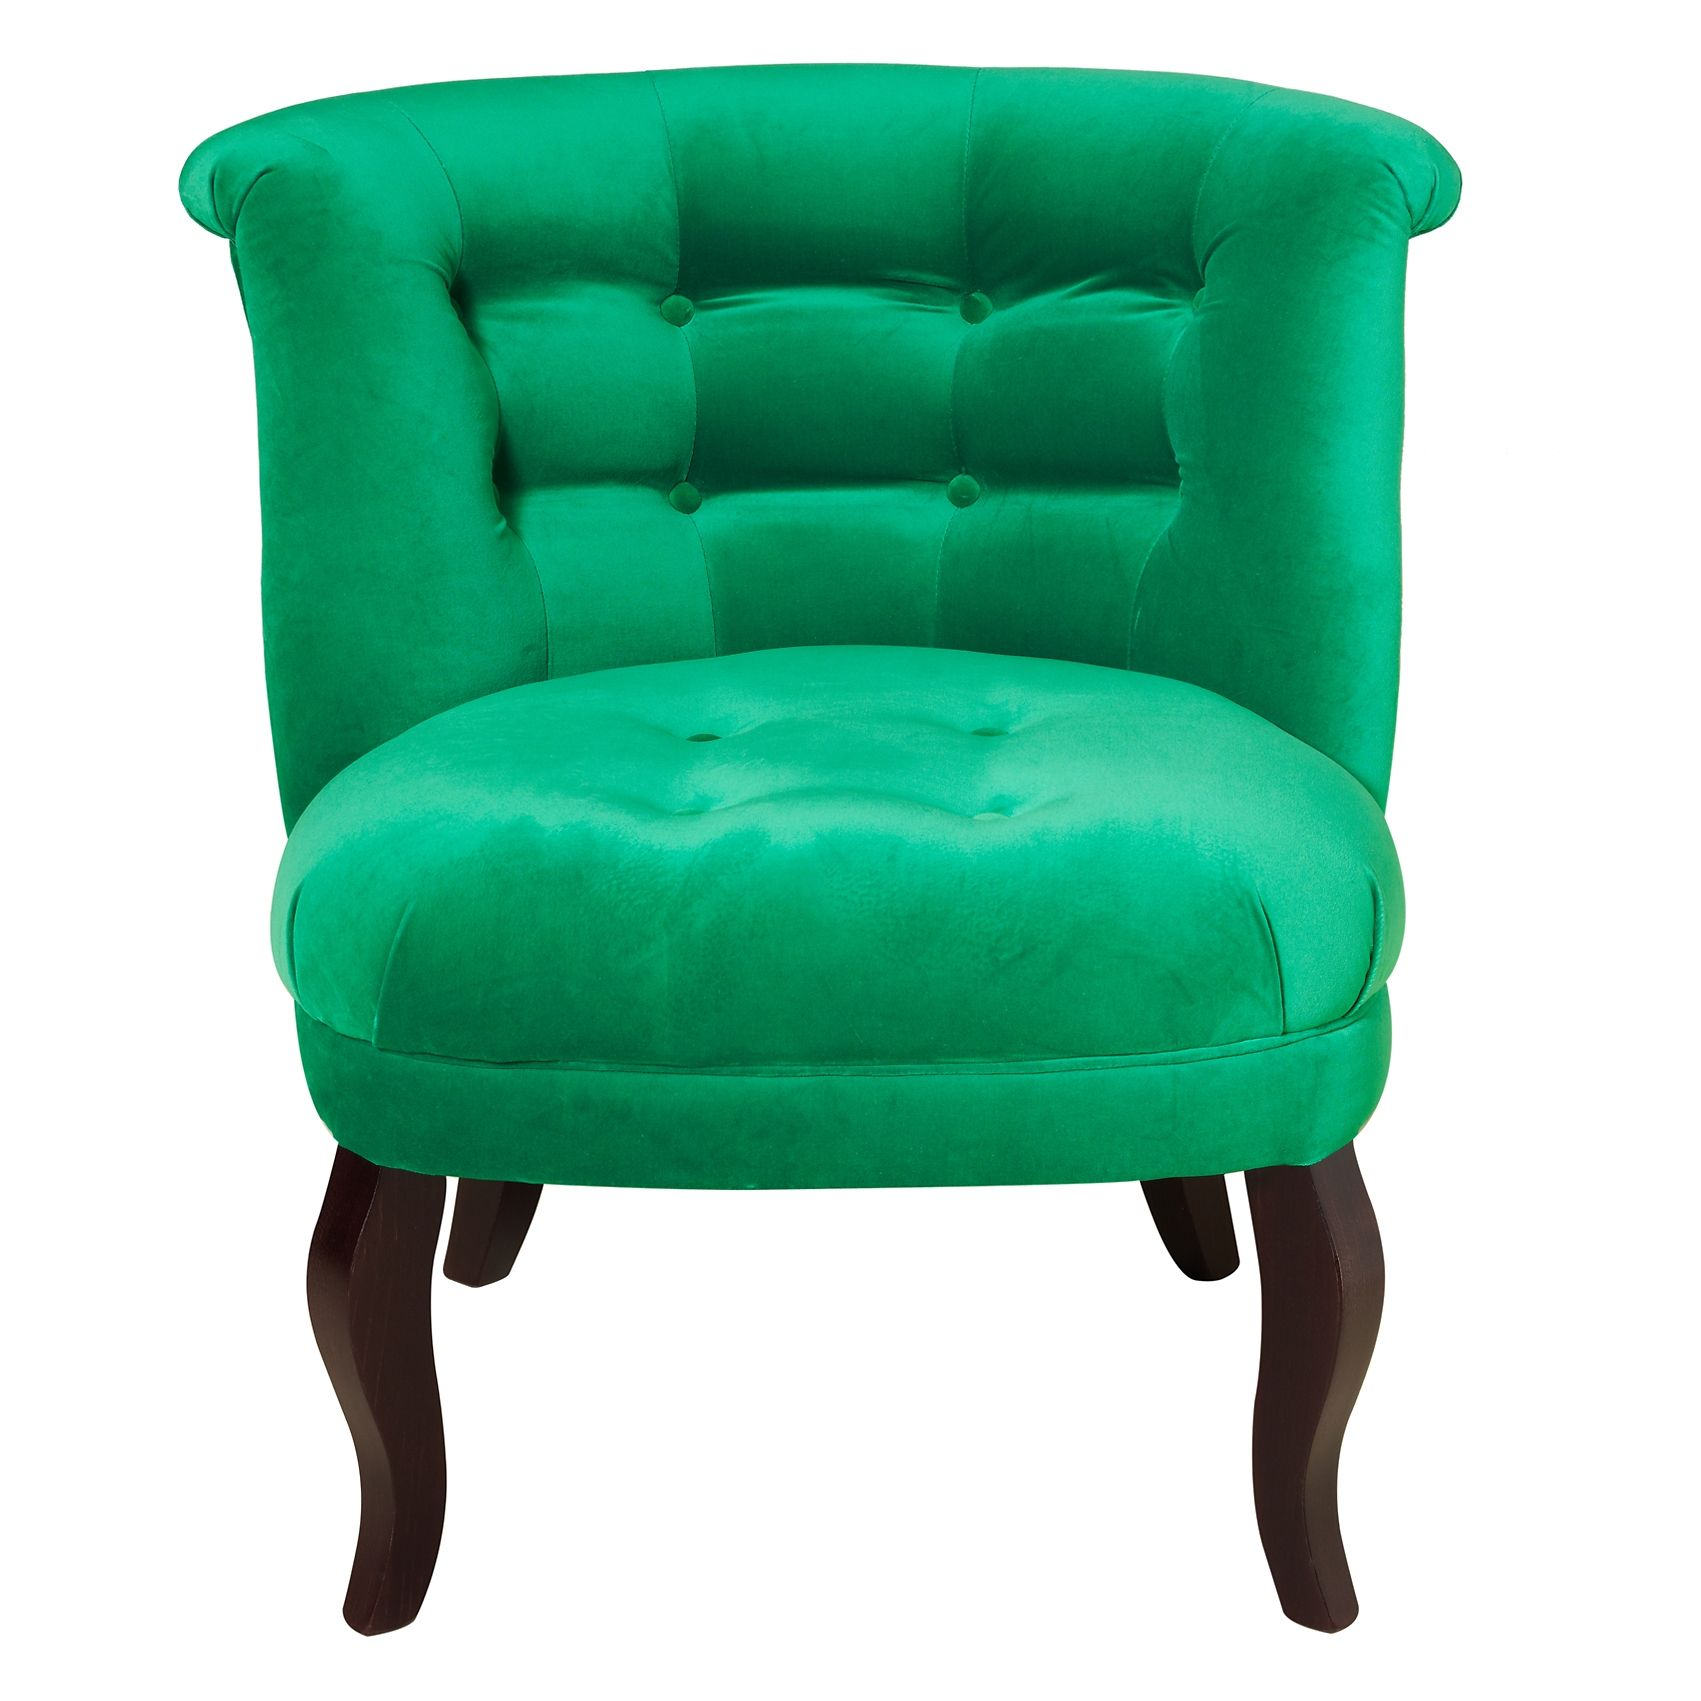 Emerald Green Velvet Chair Wooden Deck Chairs Tub Unique Things For The Home Pinterest